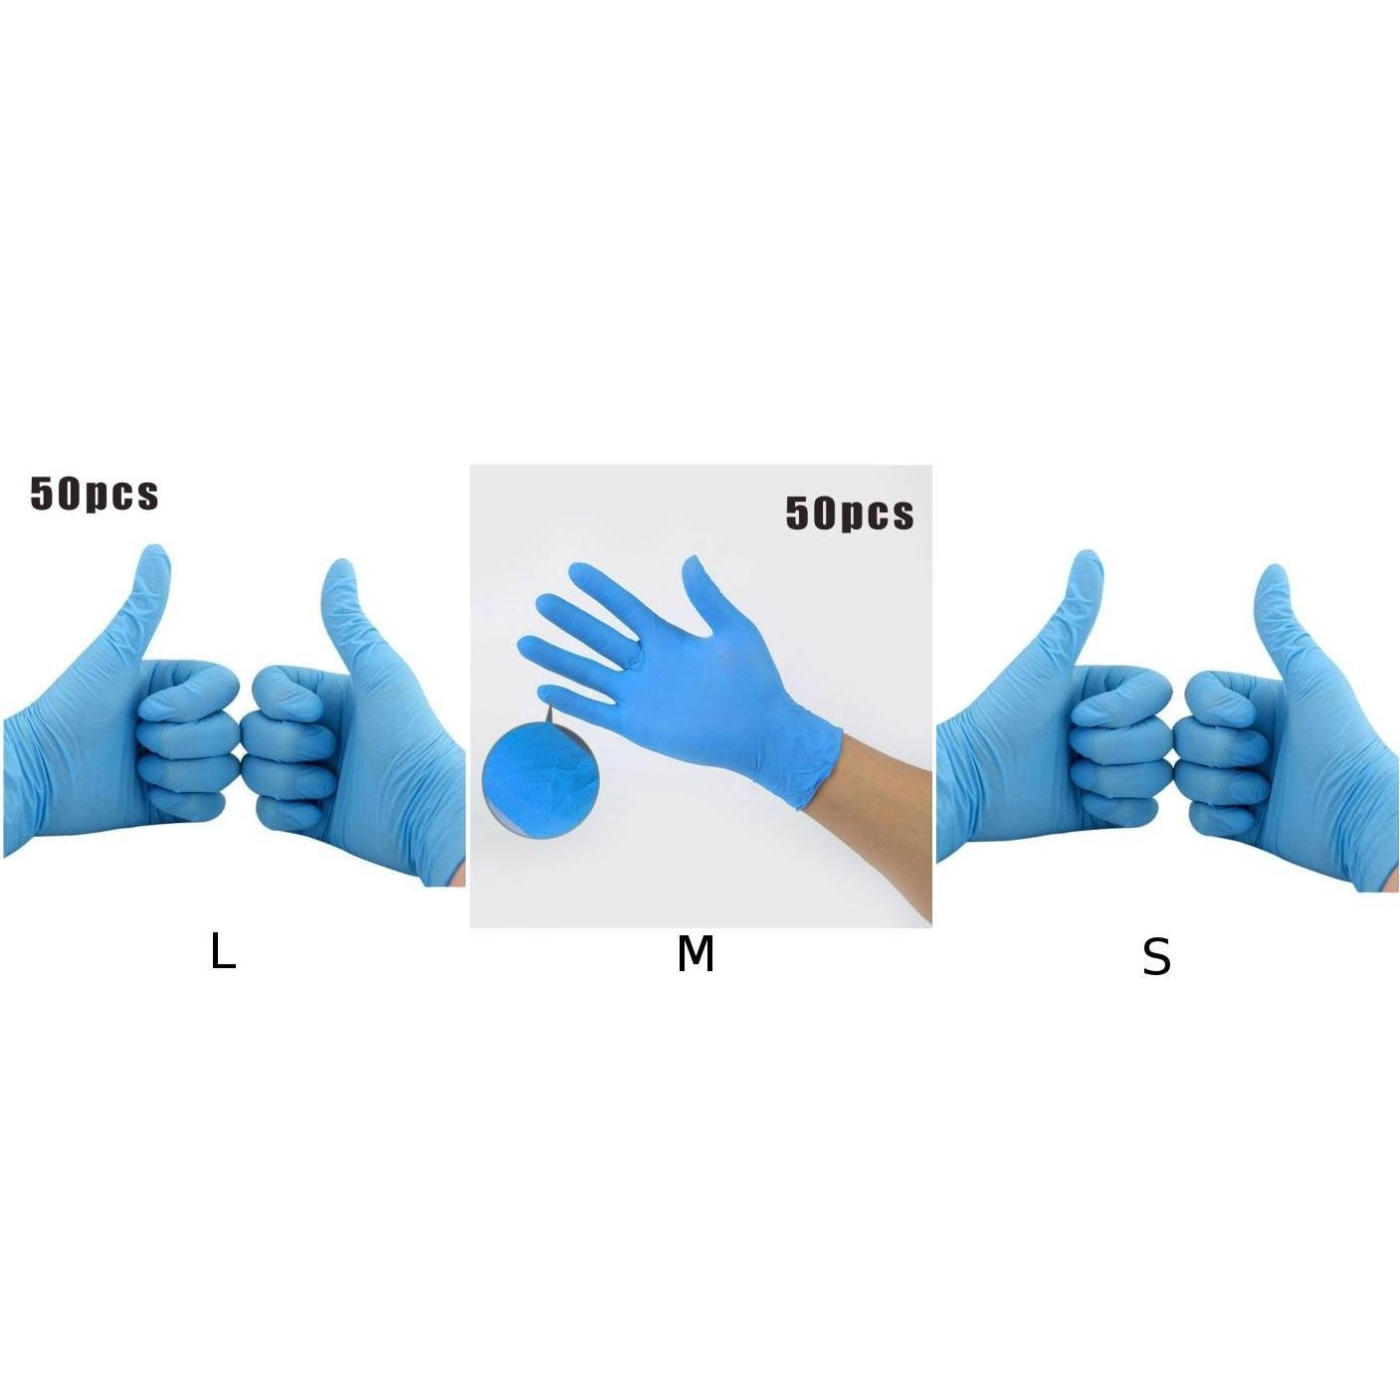 50pcs S/M/L PVC Disposable Mechanic Gloves Waterproof Non-Slip Comfortable For Left And Right Hand Dishwashing Non-Slip